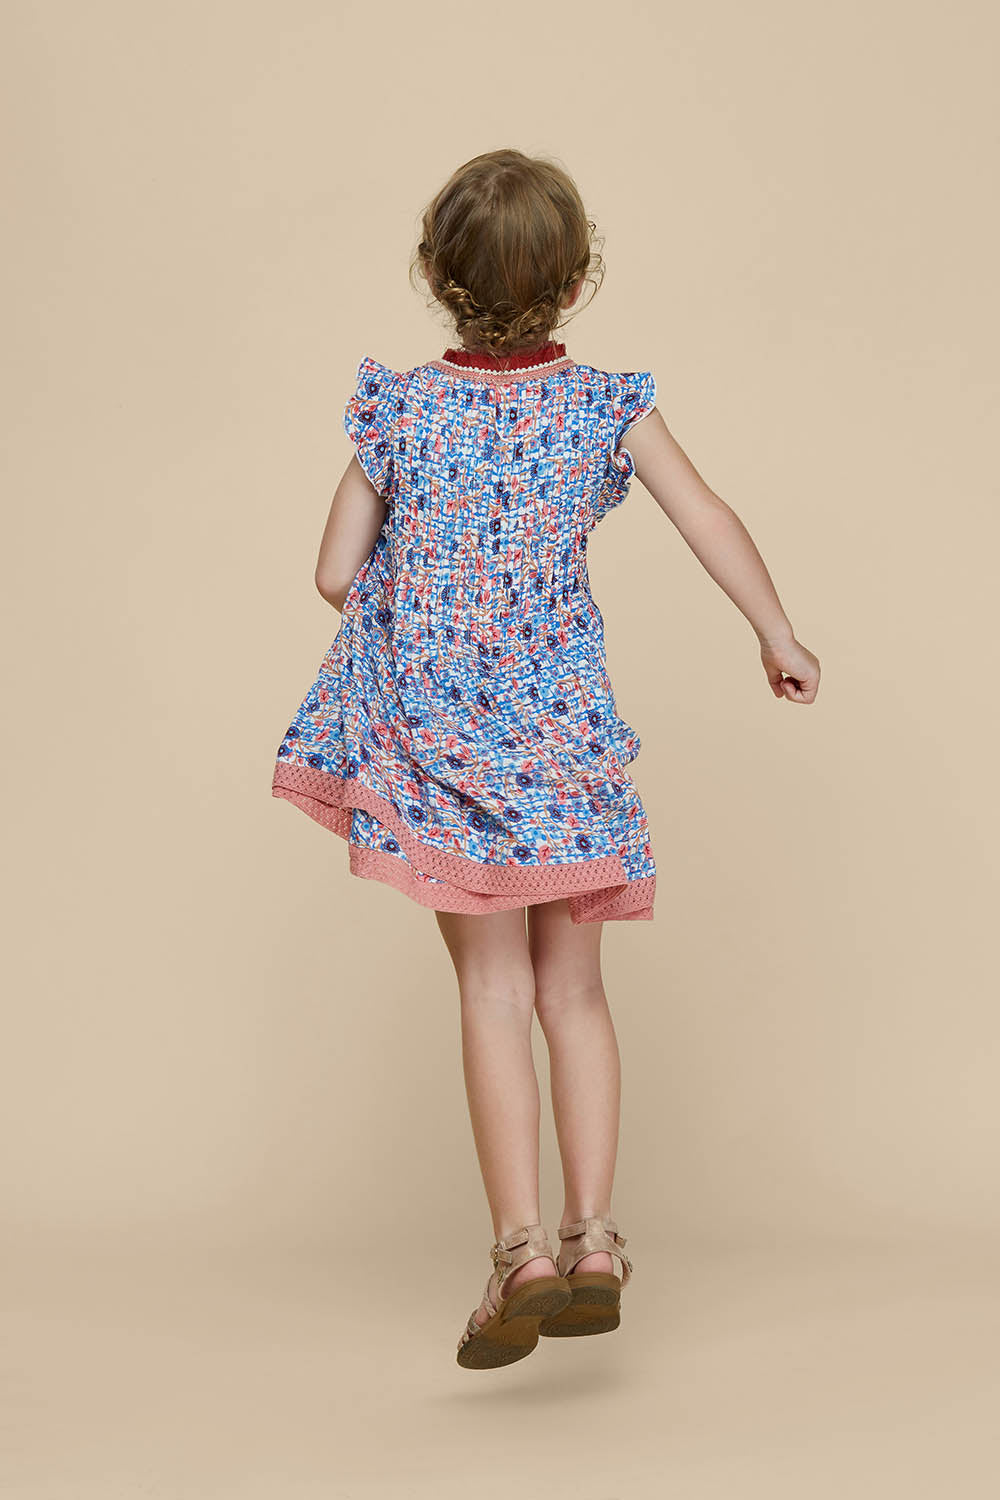 Kids Mini Dress Sasha Lace Trimmed - Blue Bloom